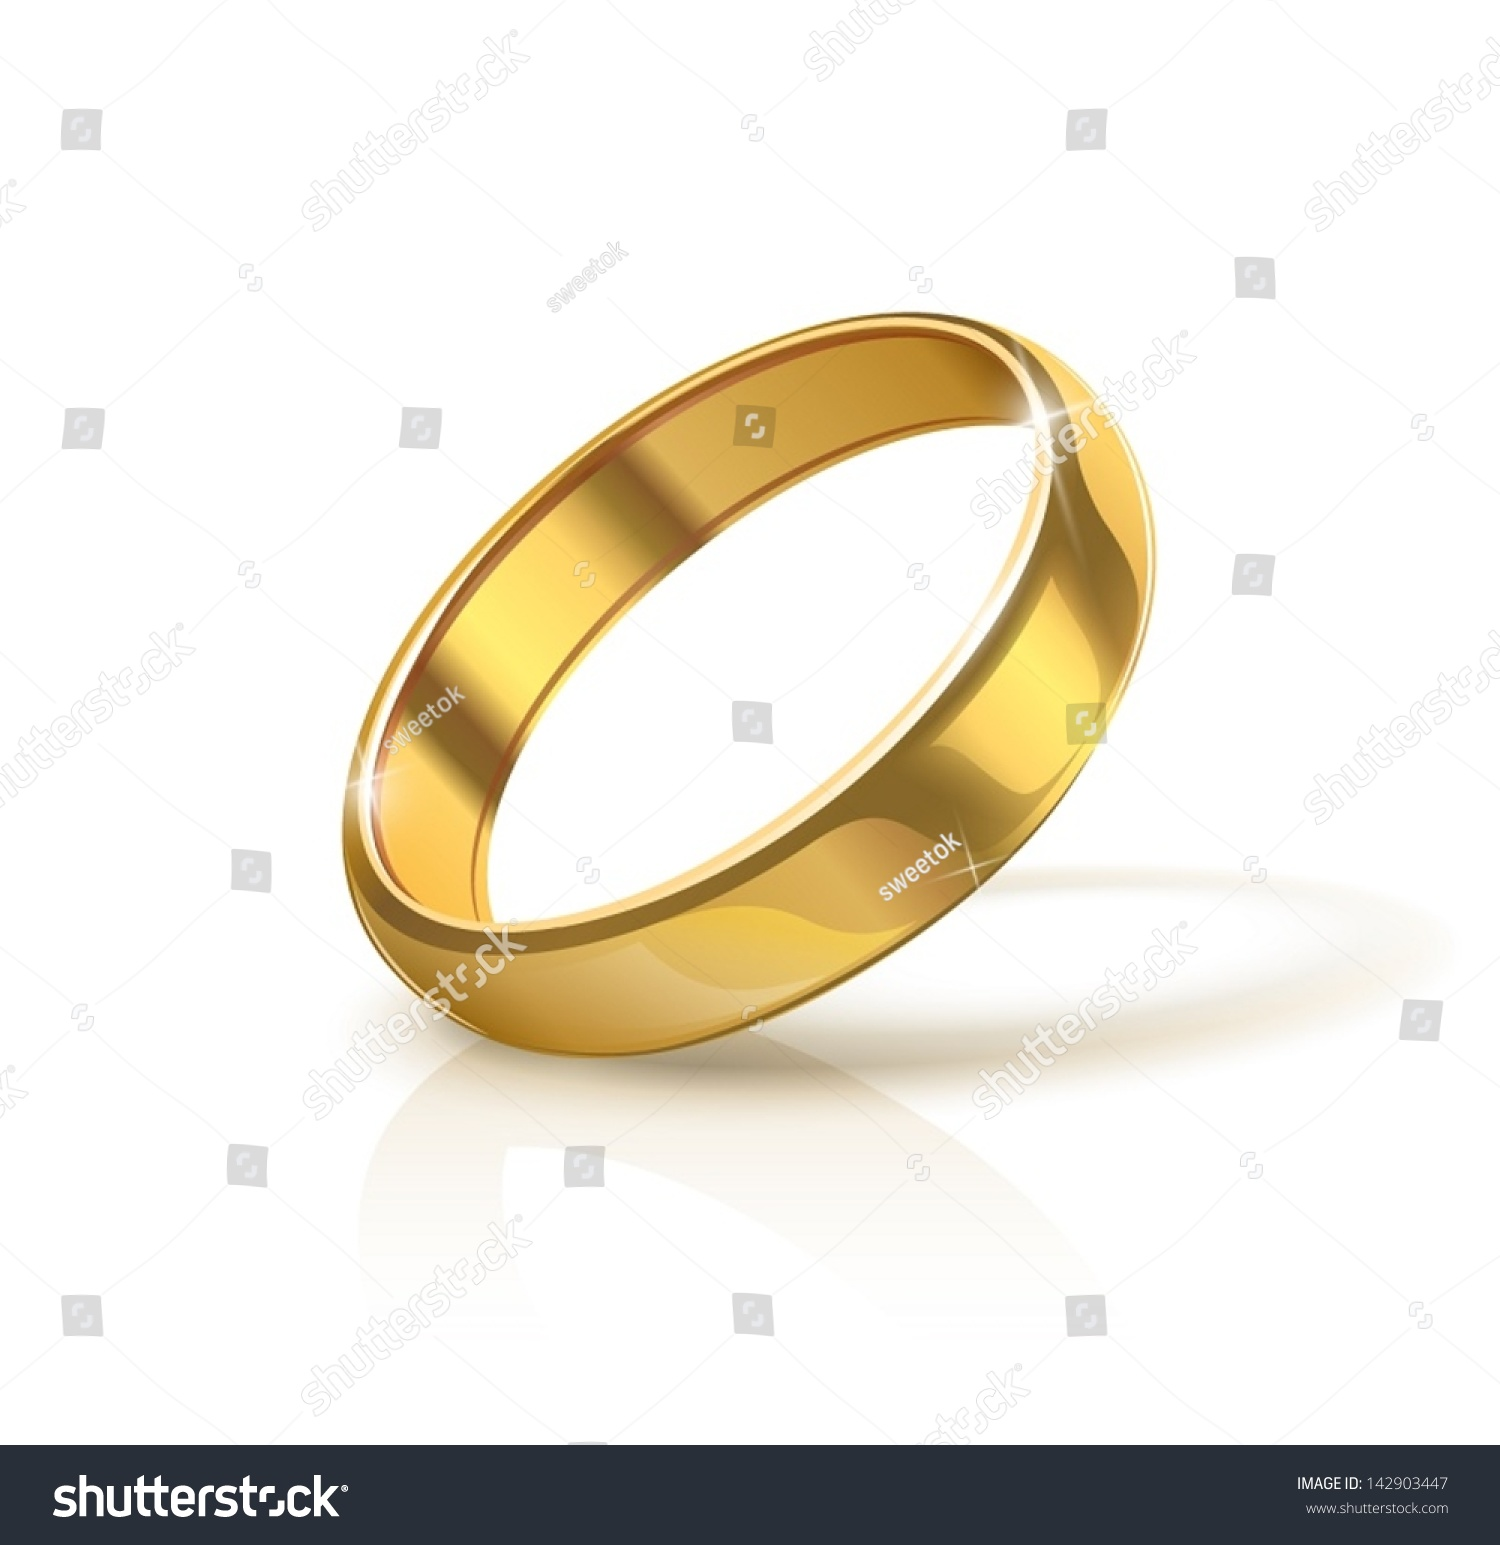 used wedding ring golden wedding ring vector illustration isolated on white background eps10 transparent objects download - Used Wedding Rings For Sale